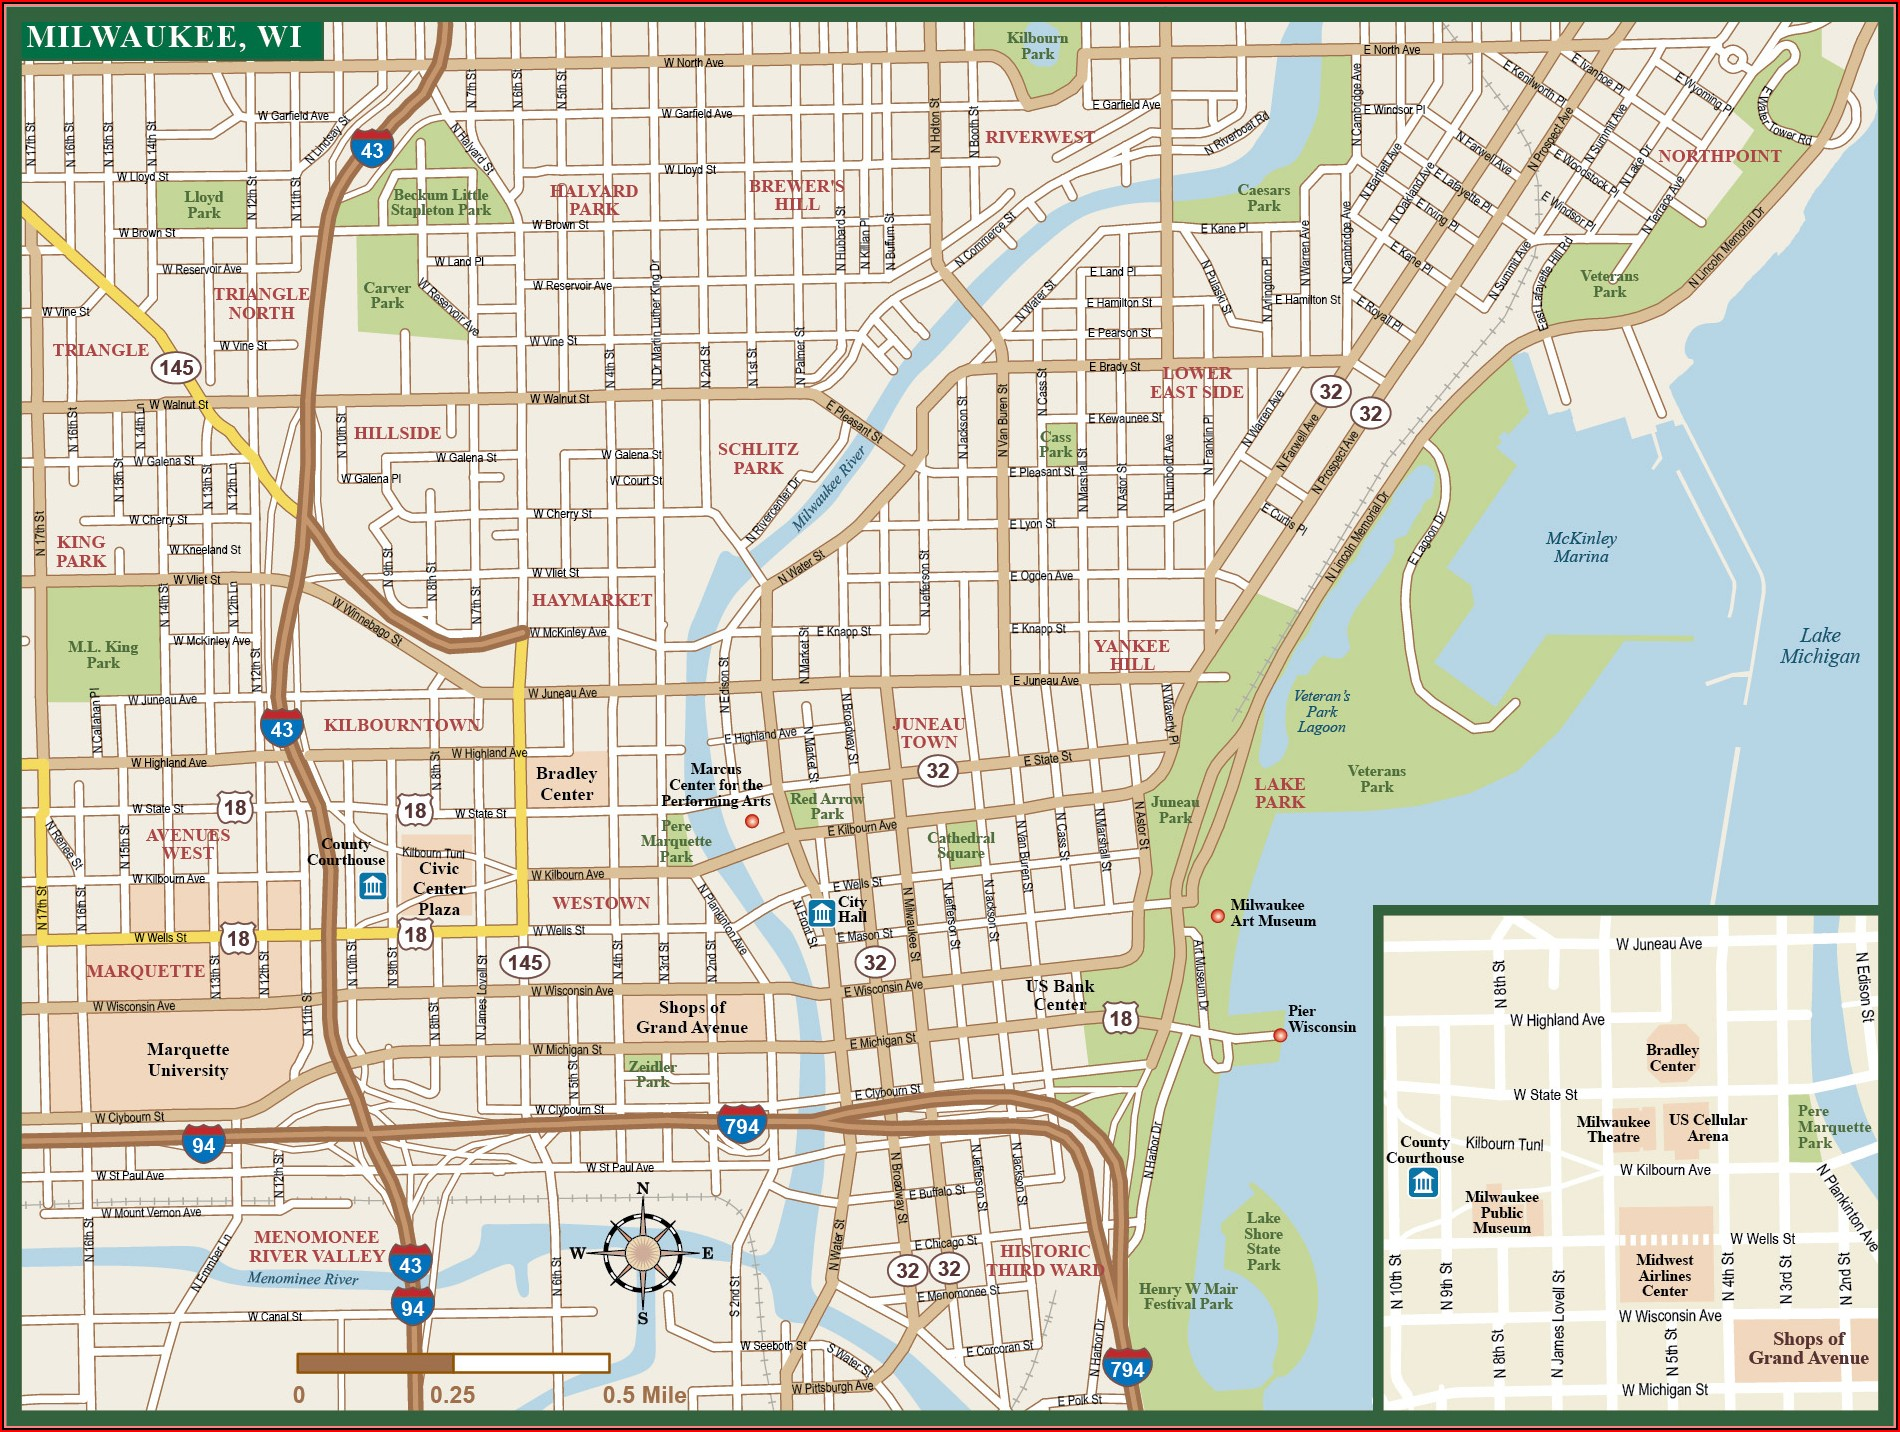 Map Of Hotels In Downtown Milwaukee Wi